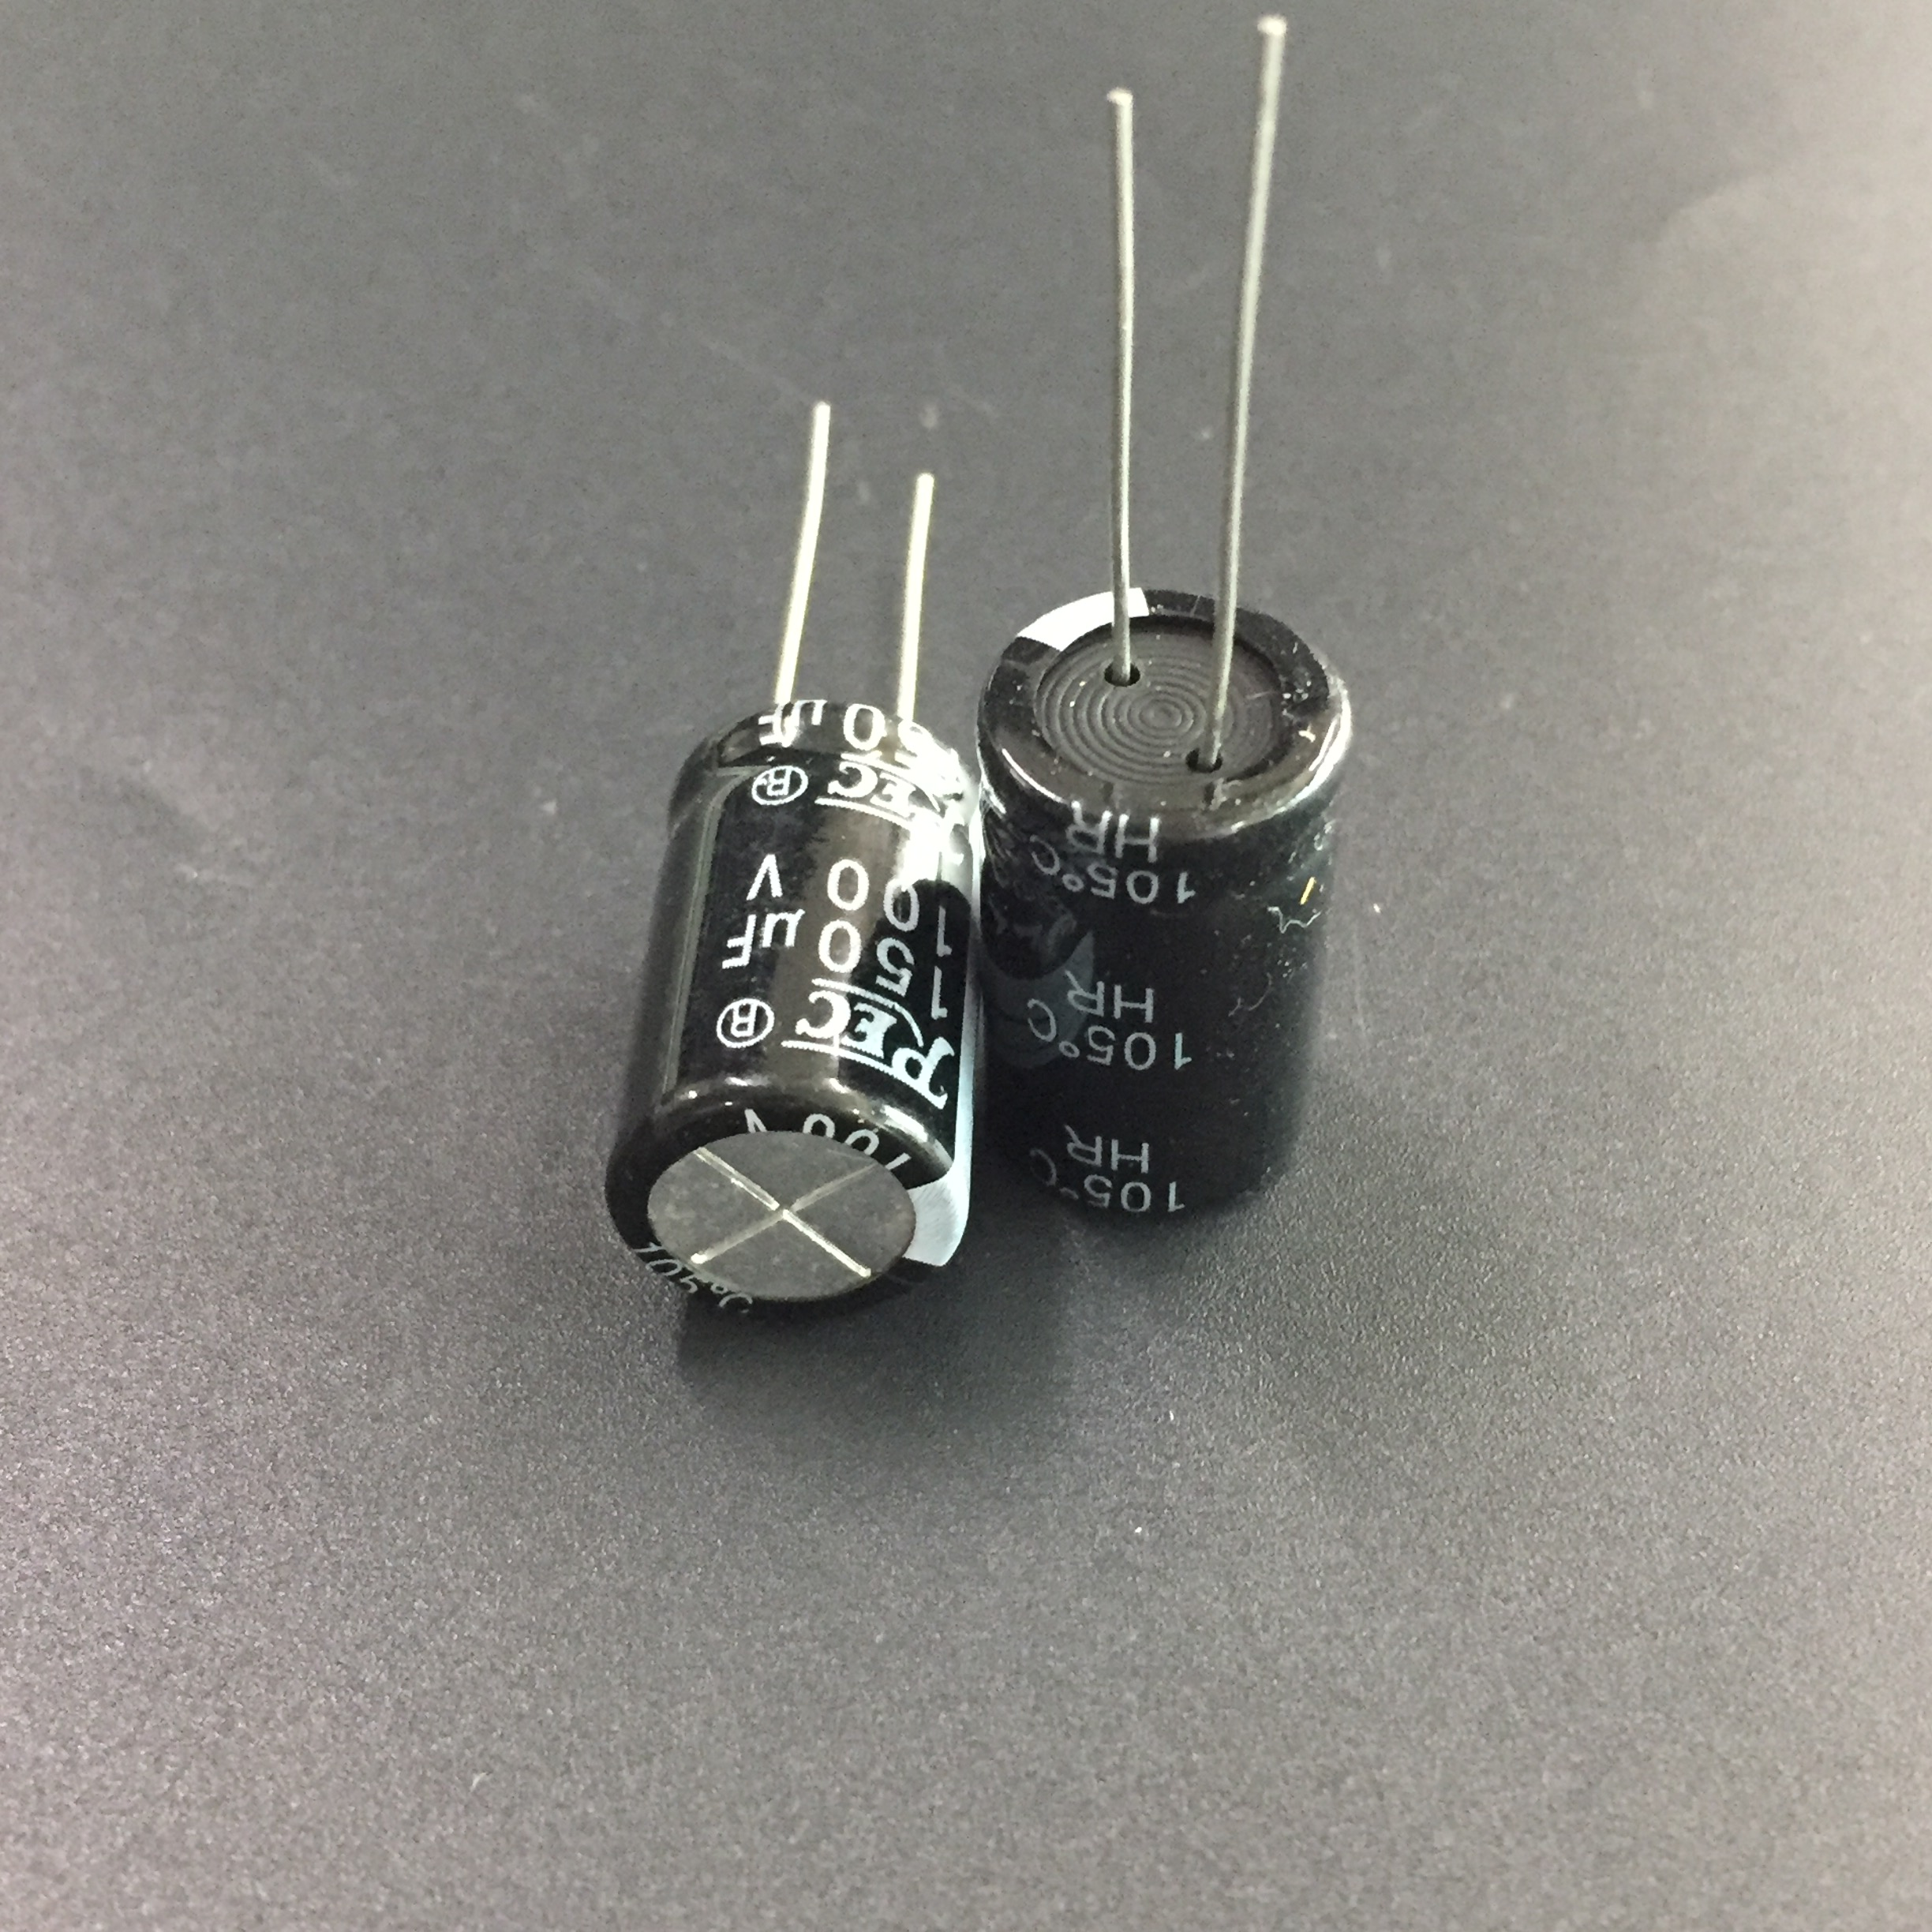 5pcs/50pcs <font><b>150uF</b></font> <font><b>100V</b></font> REC HR 12.5x20mm 100V150uF Good quality Aluminum Electrolytic Capacitor image